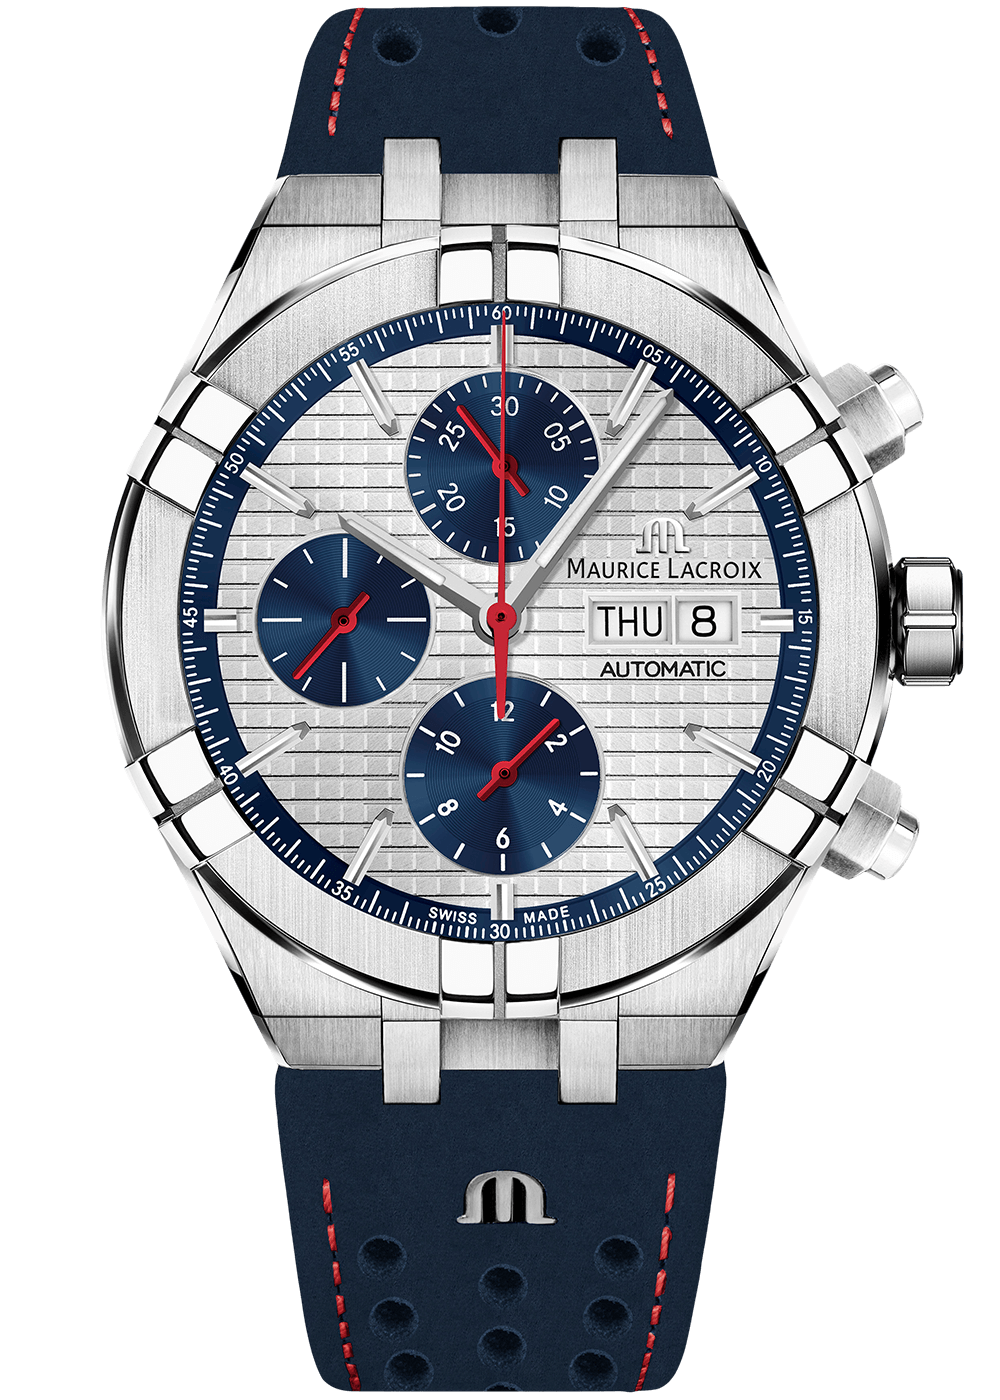 Aikon Chronograph Limited Edition Zurich